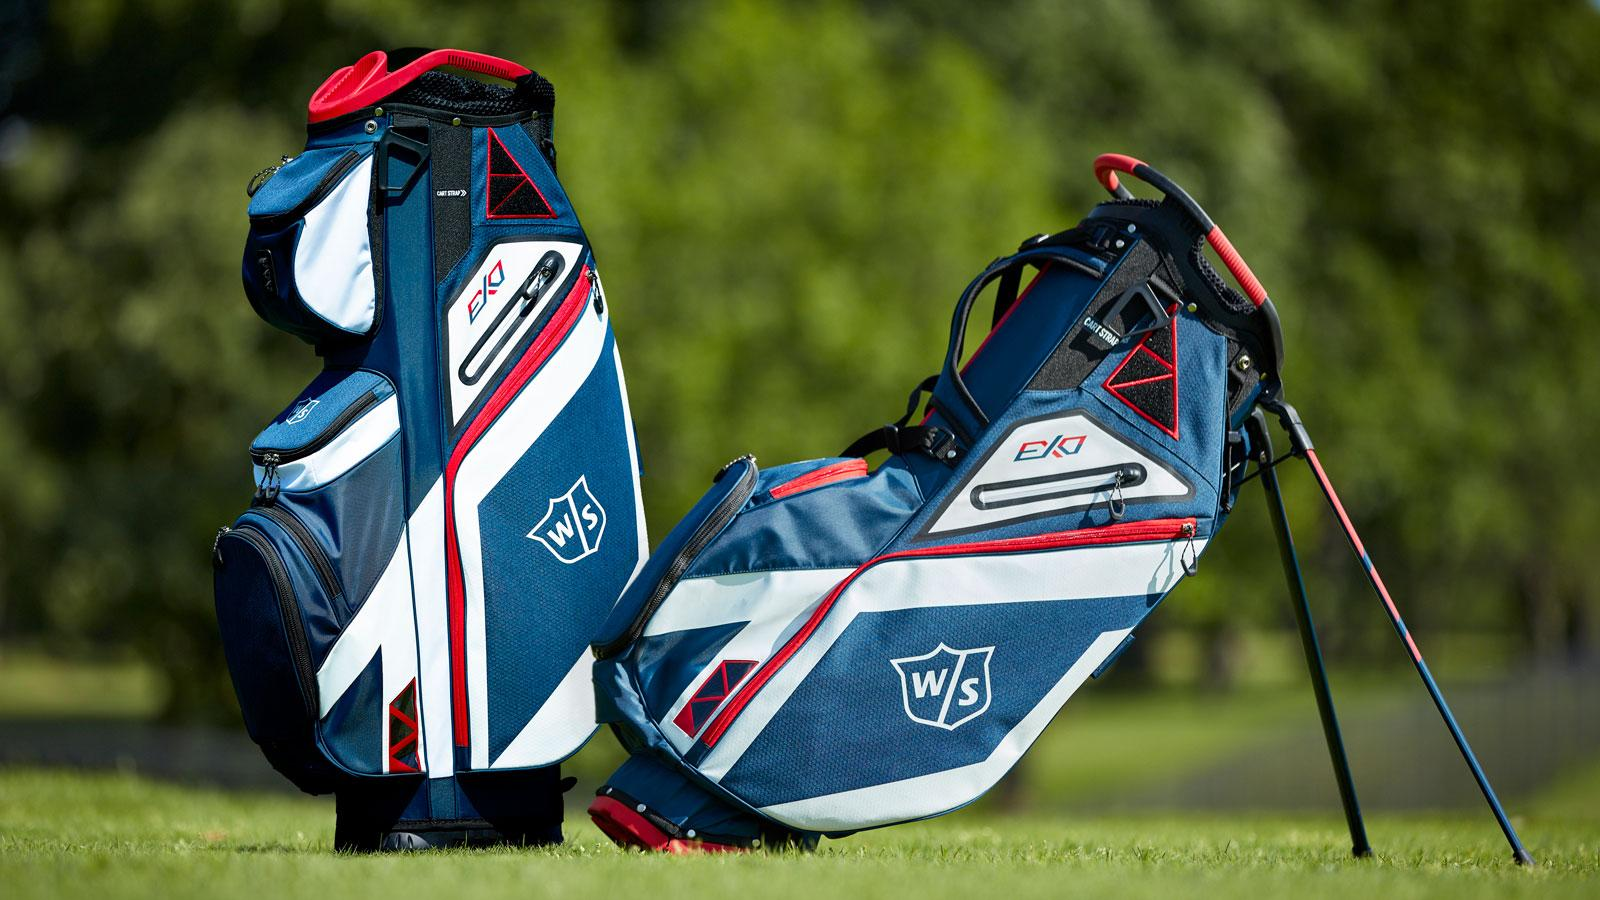 Wilson eXo carry Golf Bag